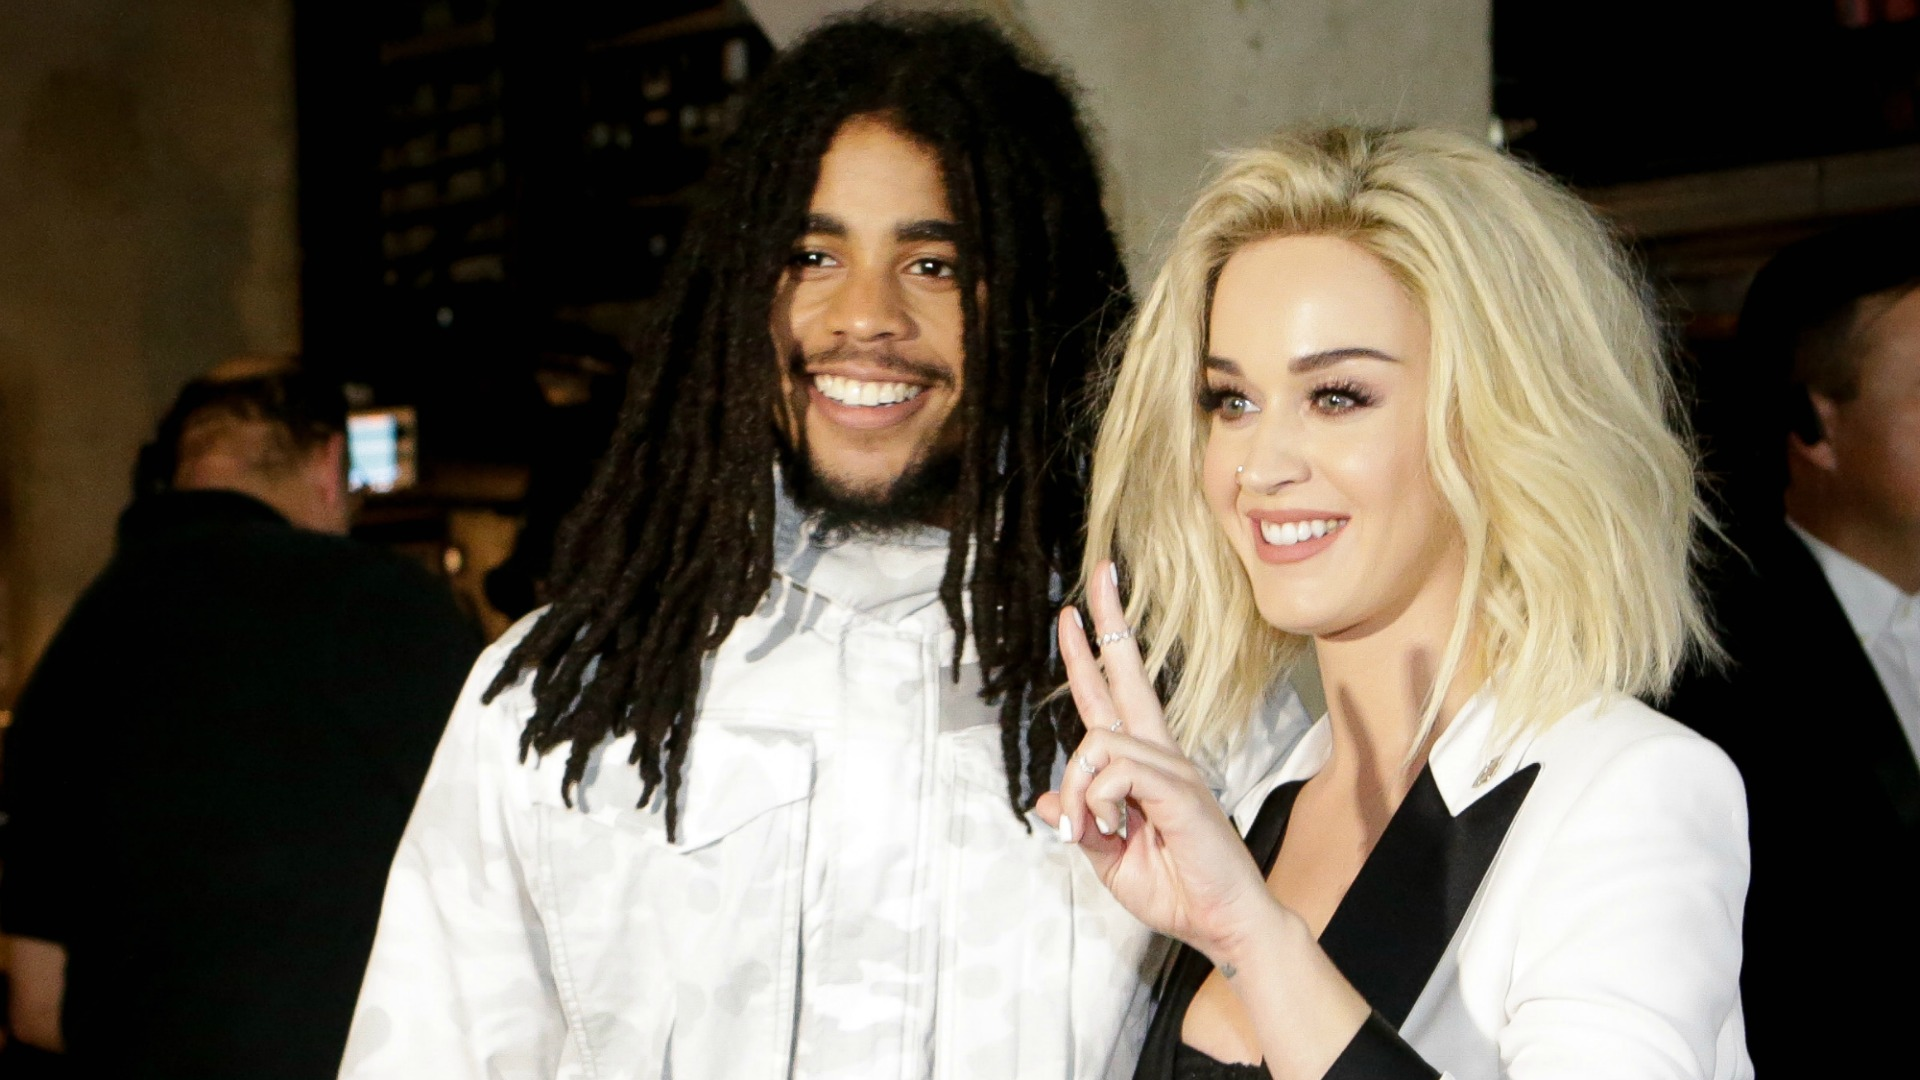 Skip Marley and Katy Perry are all about peace and performing together.